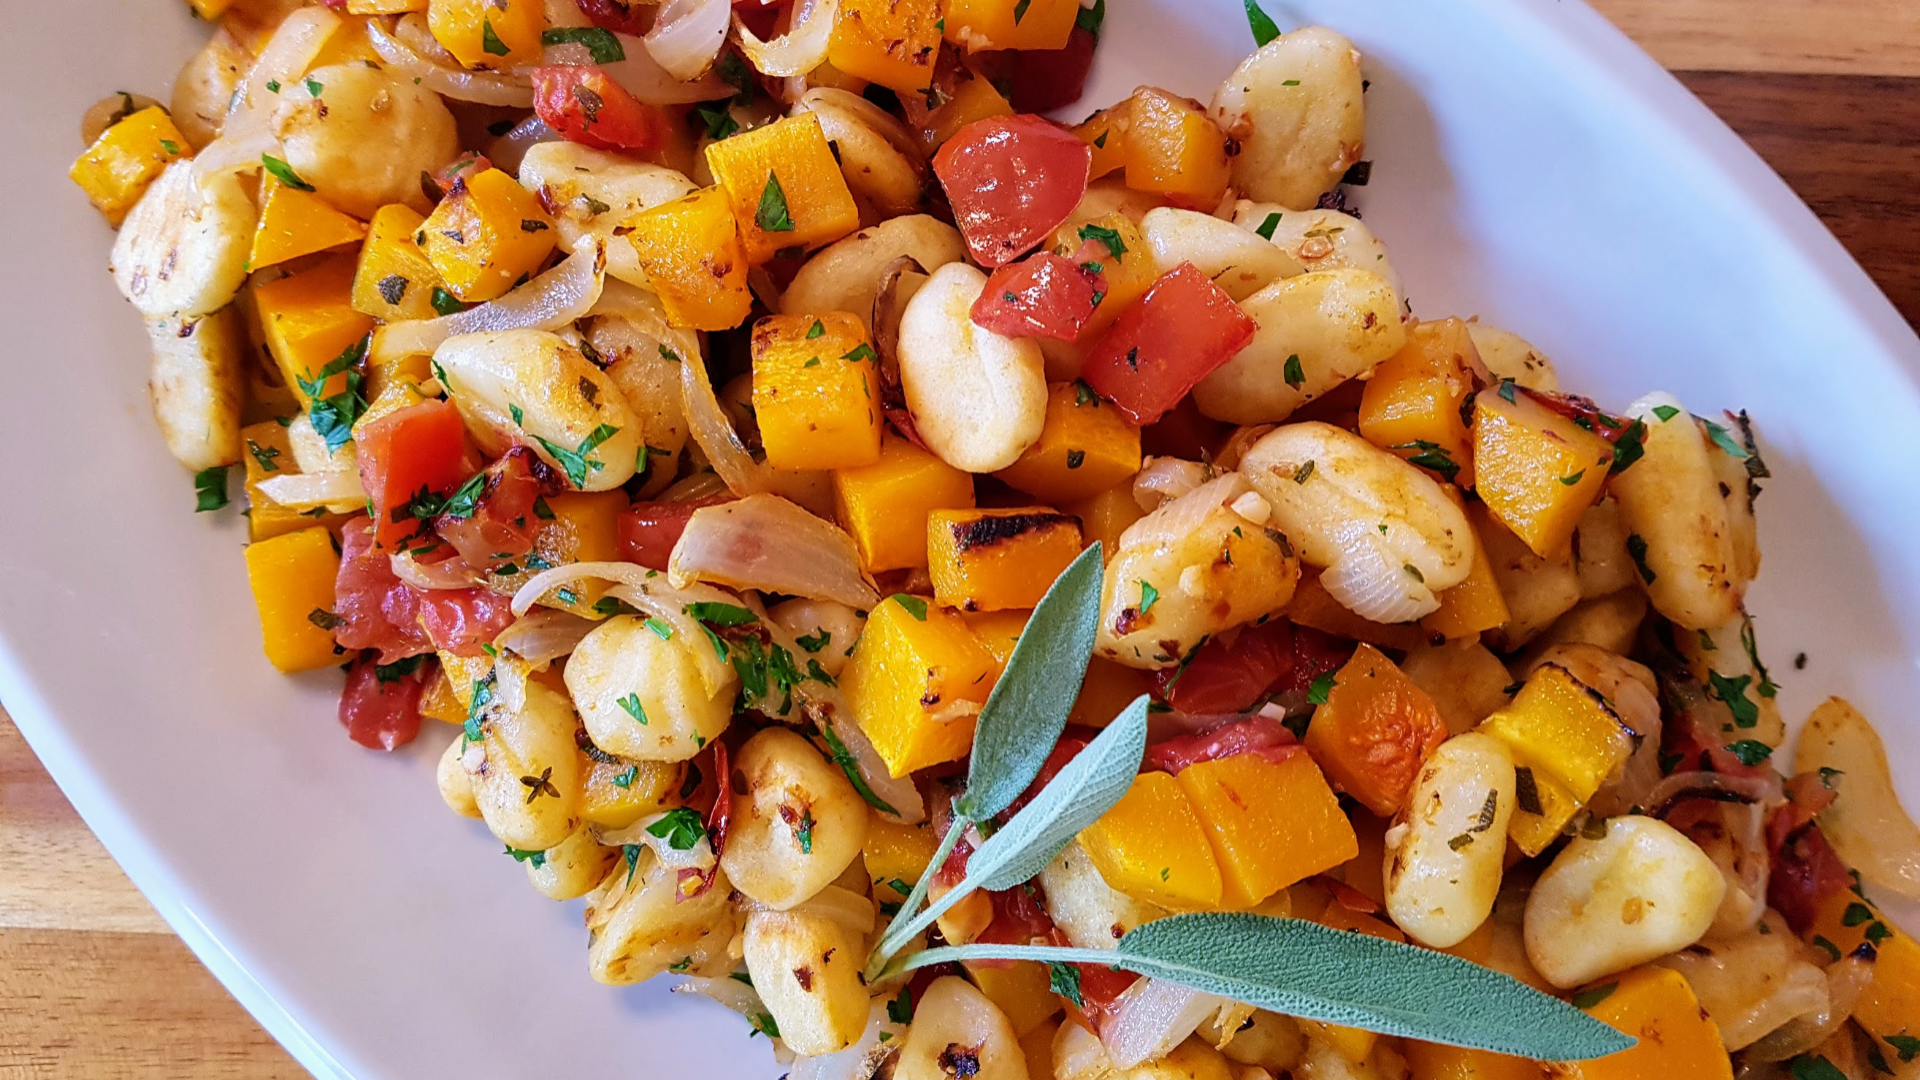 Roasted squash and gnocchi toss